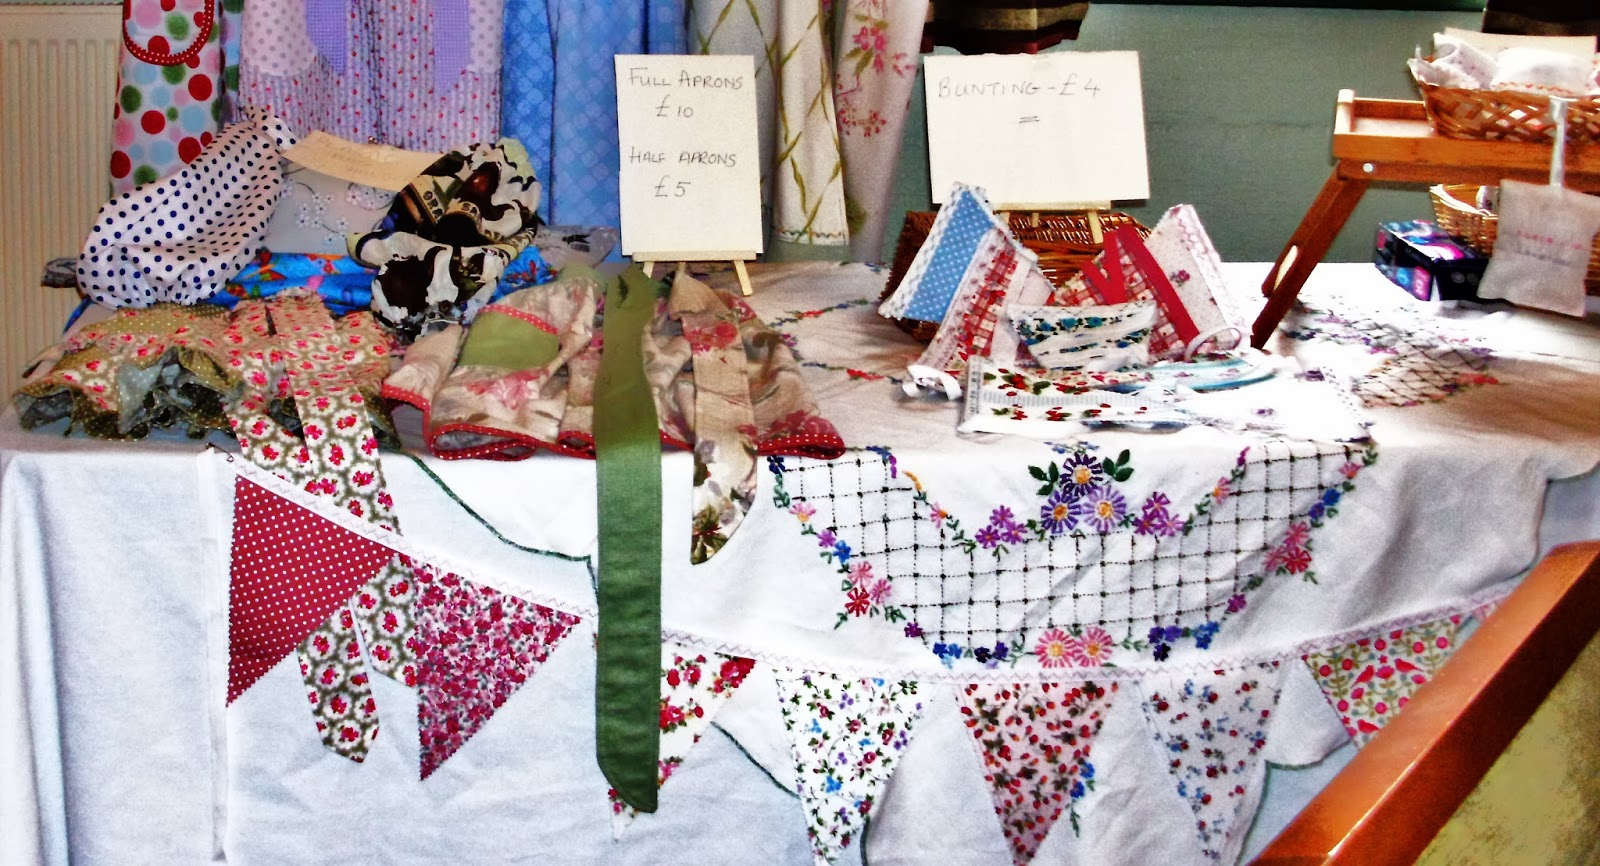 Table display of sewn items for sale in aid of Macmillan Cancer Support